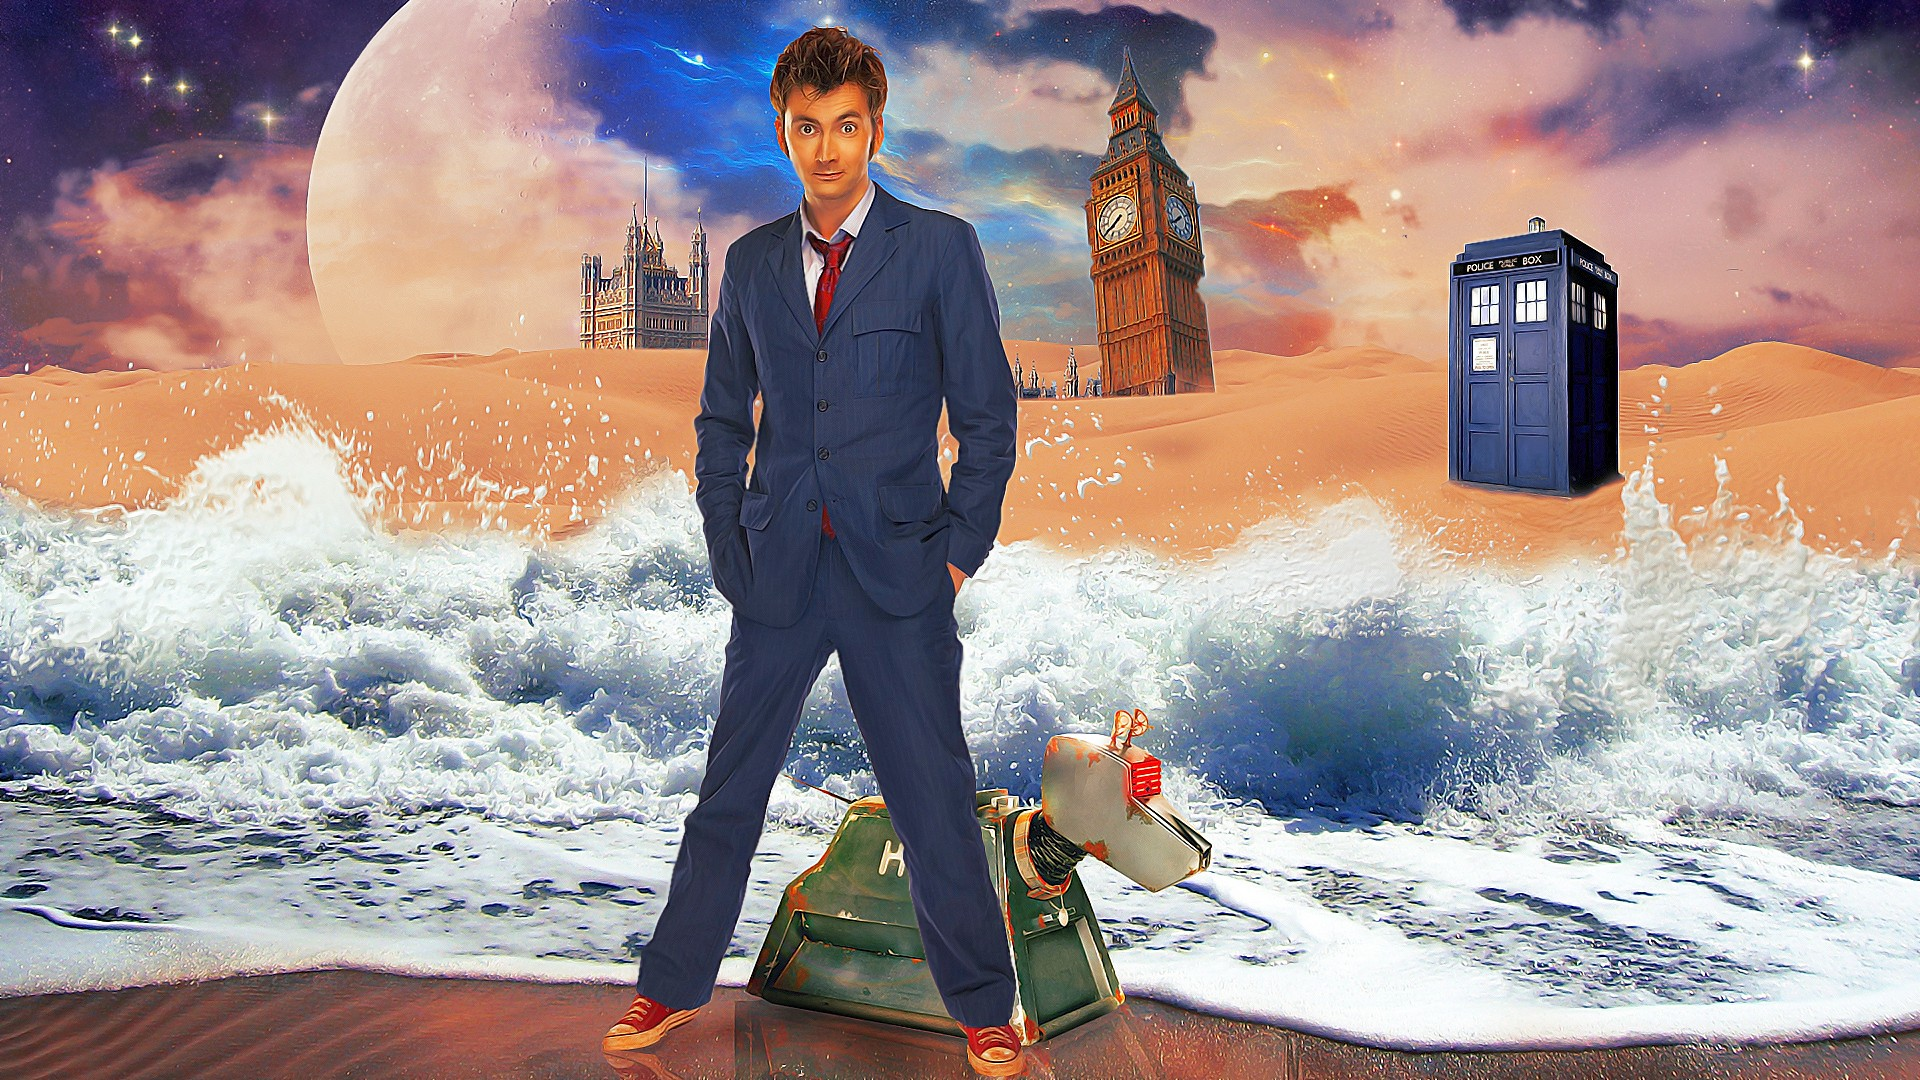 Cars Wallpapers Download For Desktop Doctor Who The Doctor Tardis David Tennant Tenth